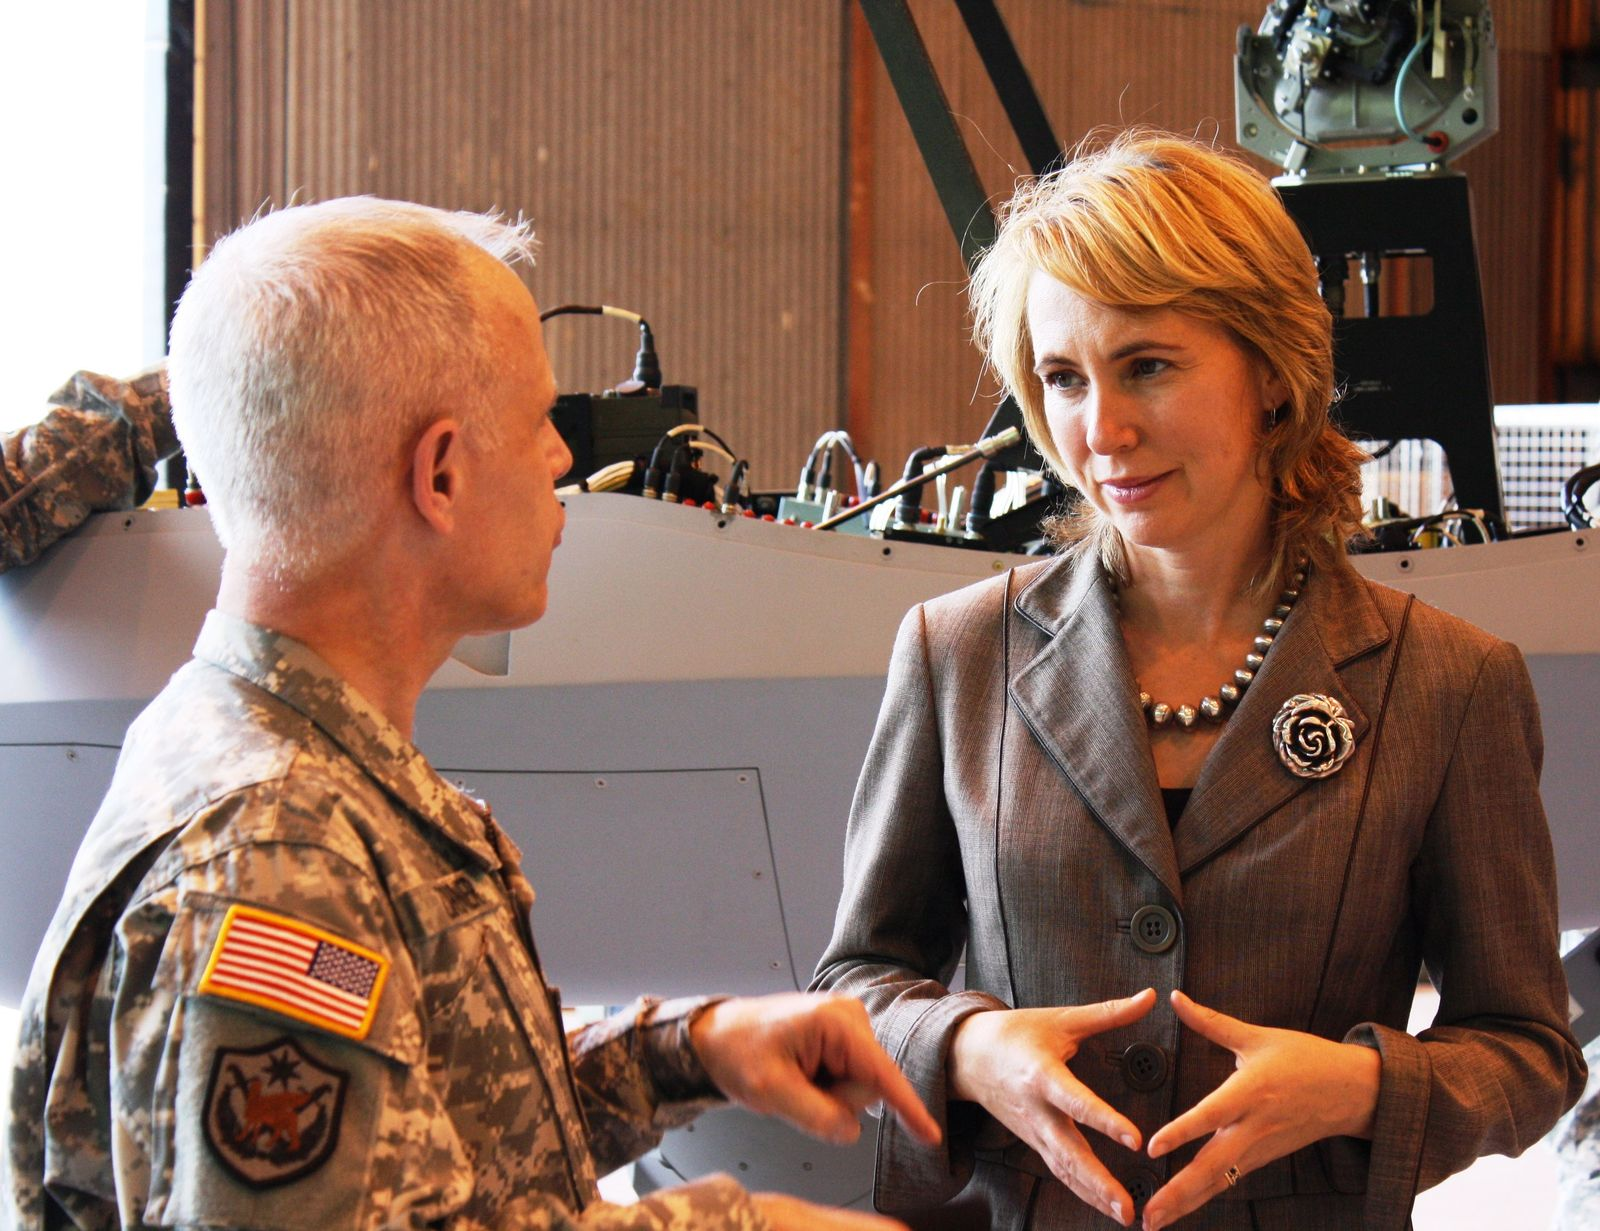 GABRIELLE GIFFORDS / ARIZONA